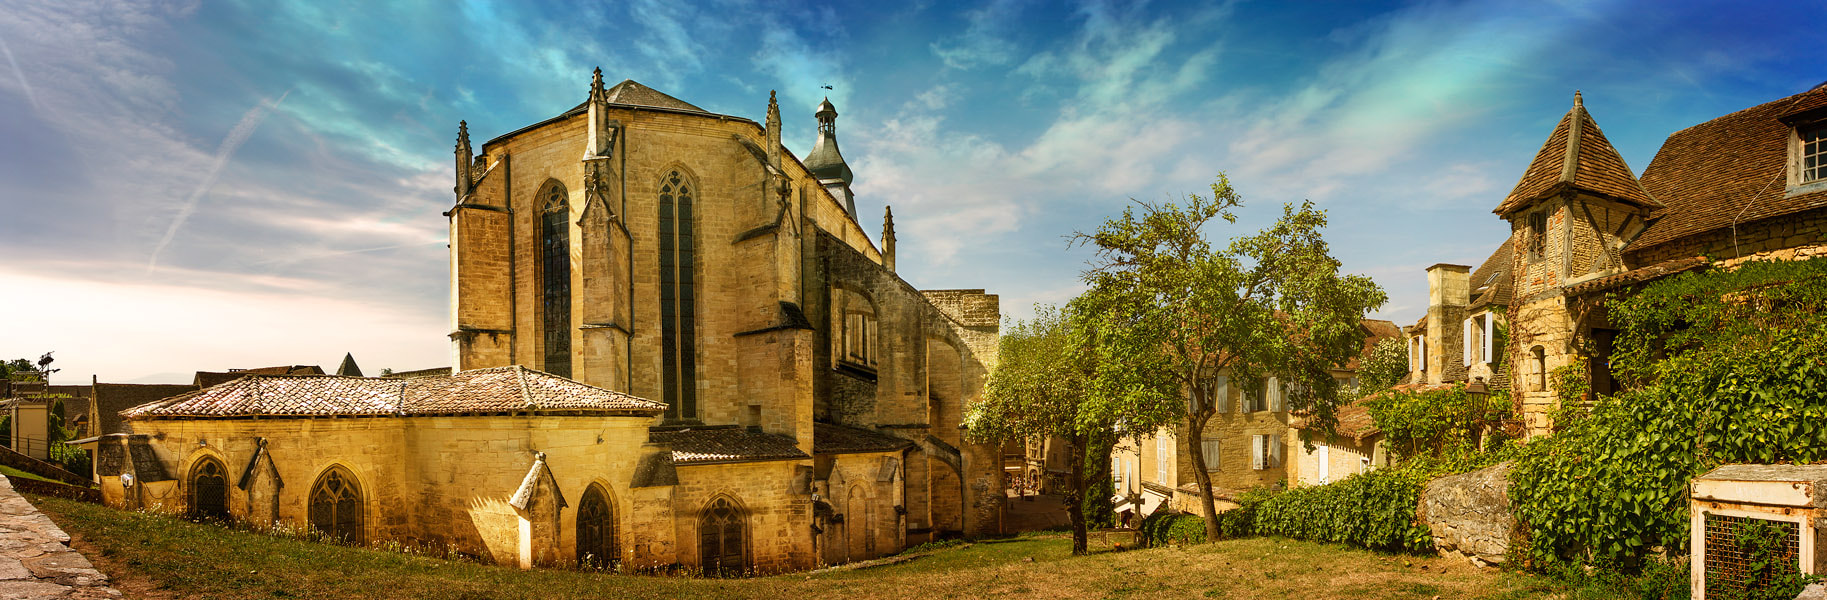 Photograph Cathédrale Saint-Sacerdos de Sarlat by PolTergejst  on 500px